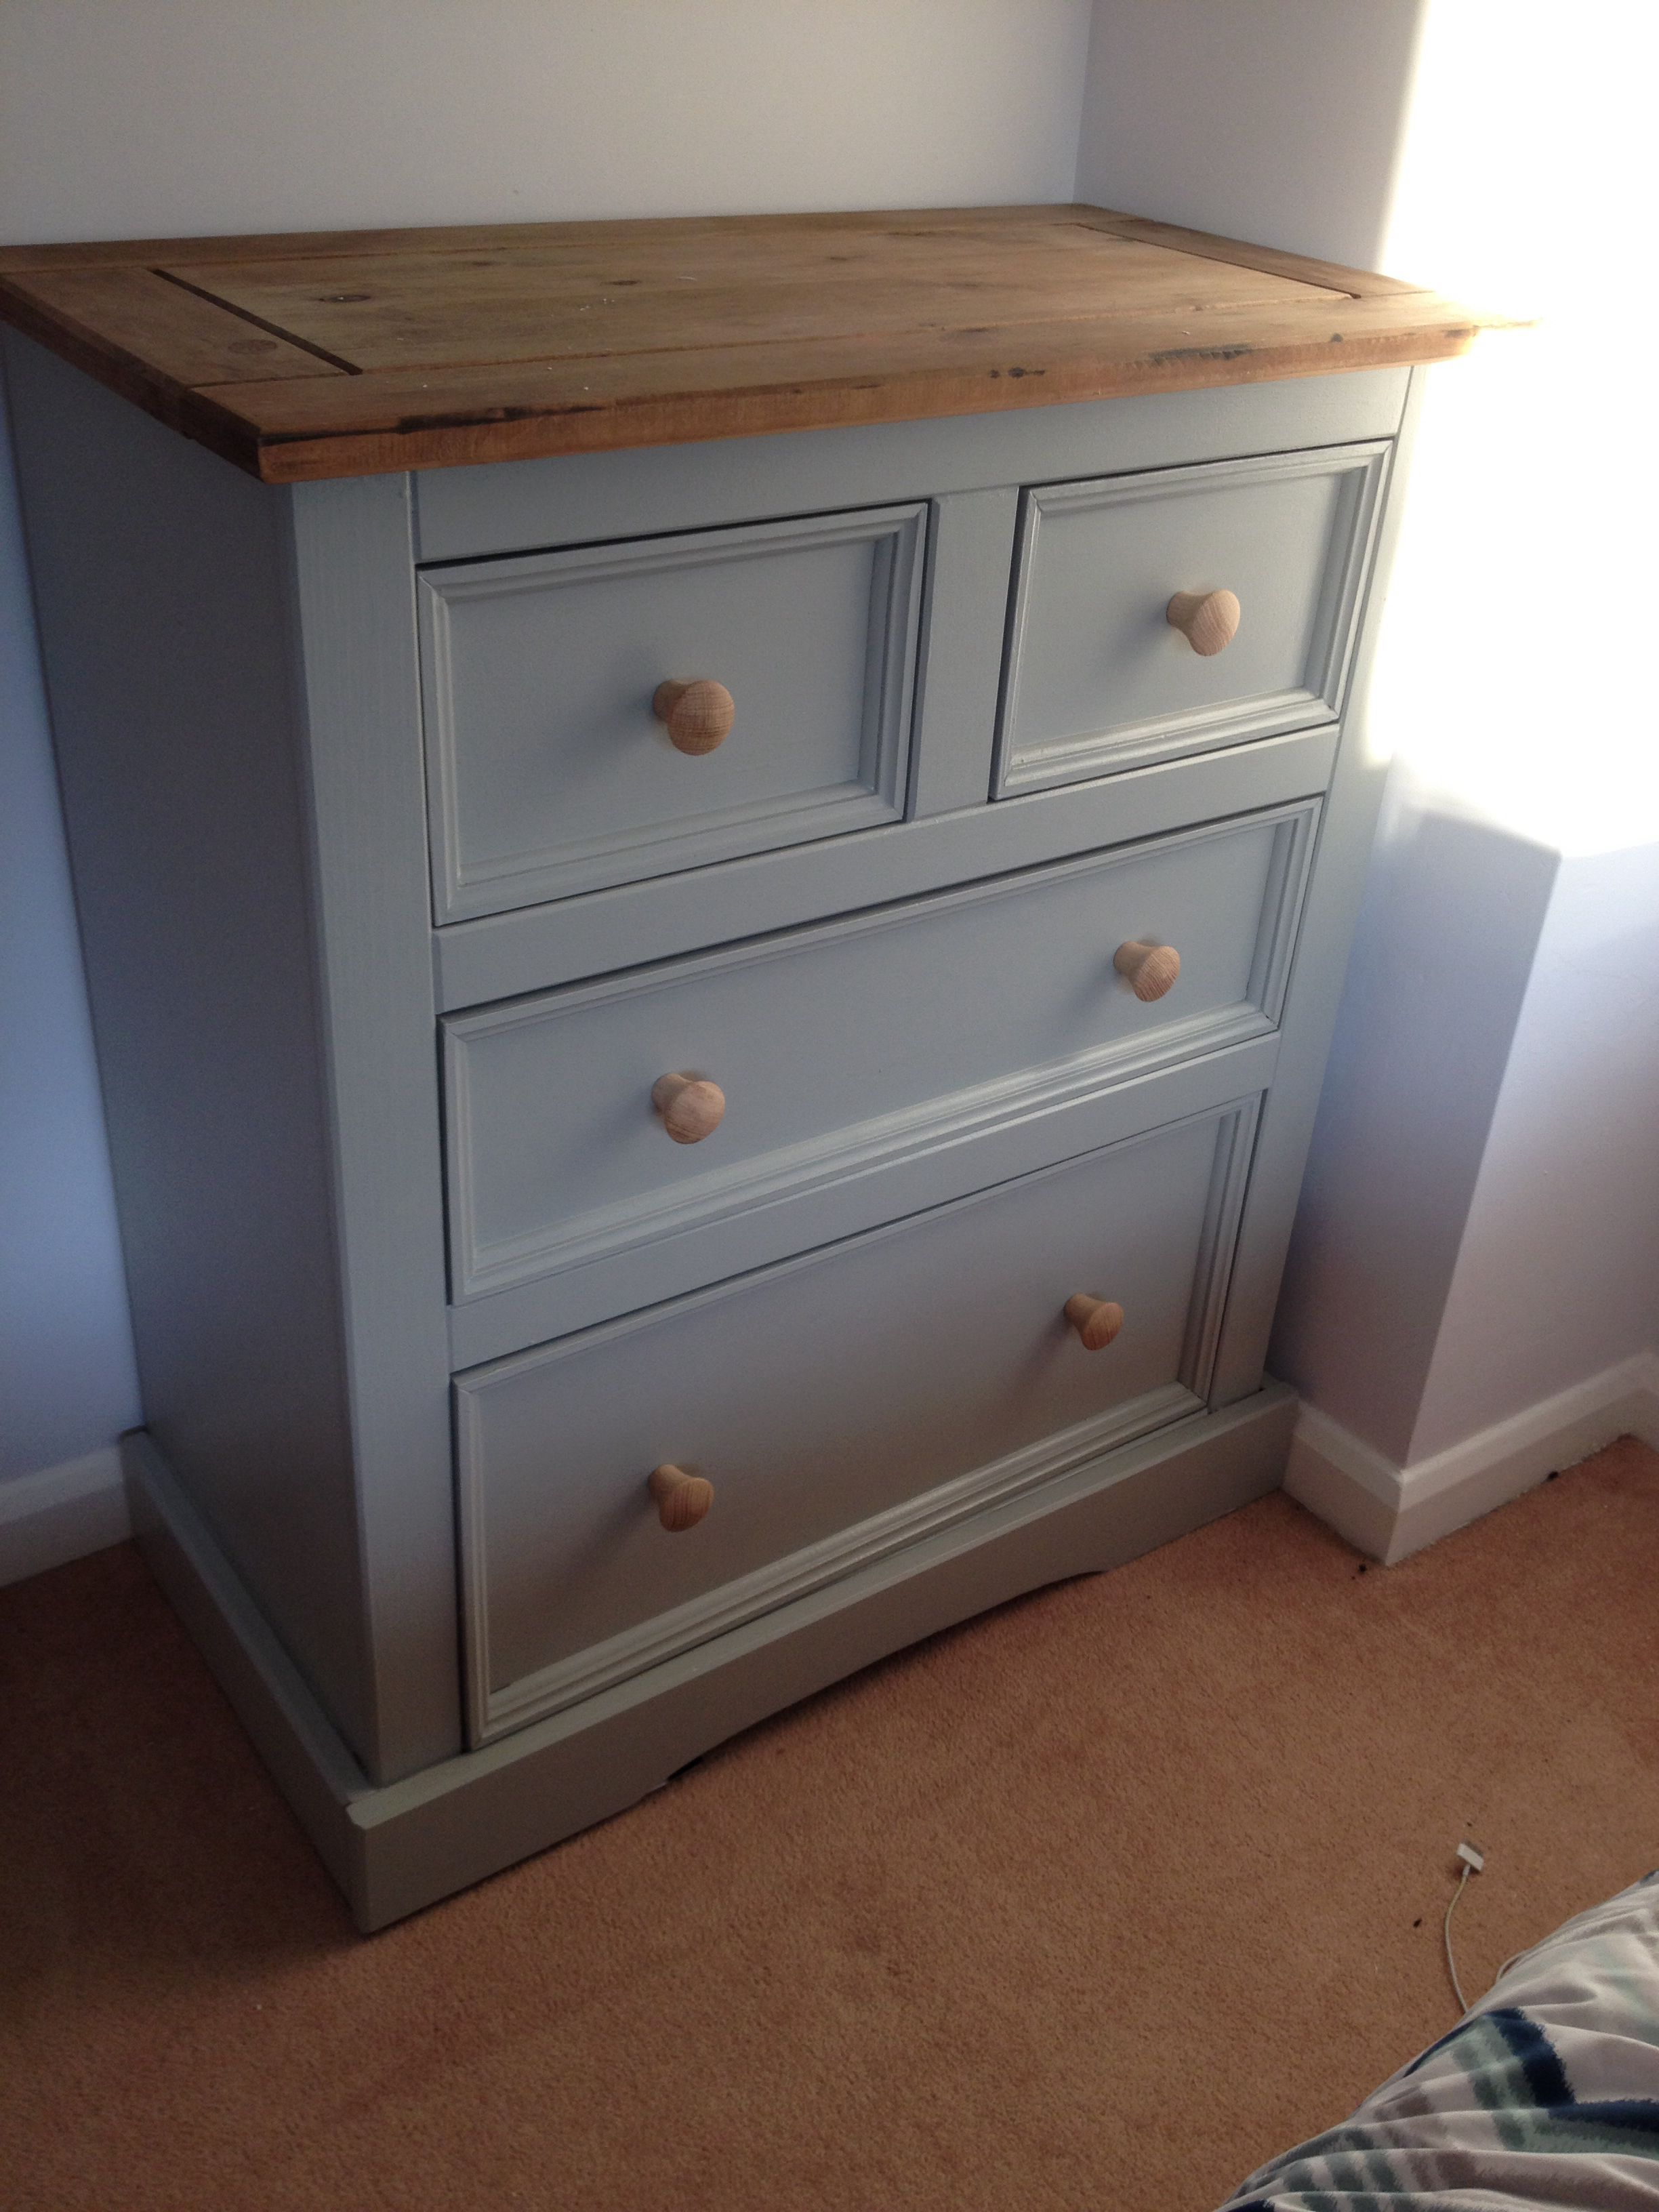 Unit Painted In Farrow And Ball Lamp Room Grey Pine Bedroom Furniture Painted Bedroom Furniture Grey Painted Furniture